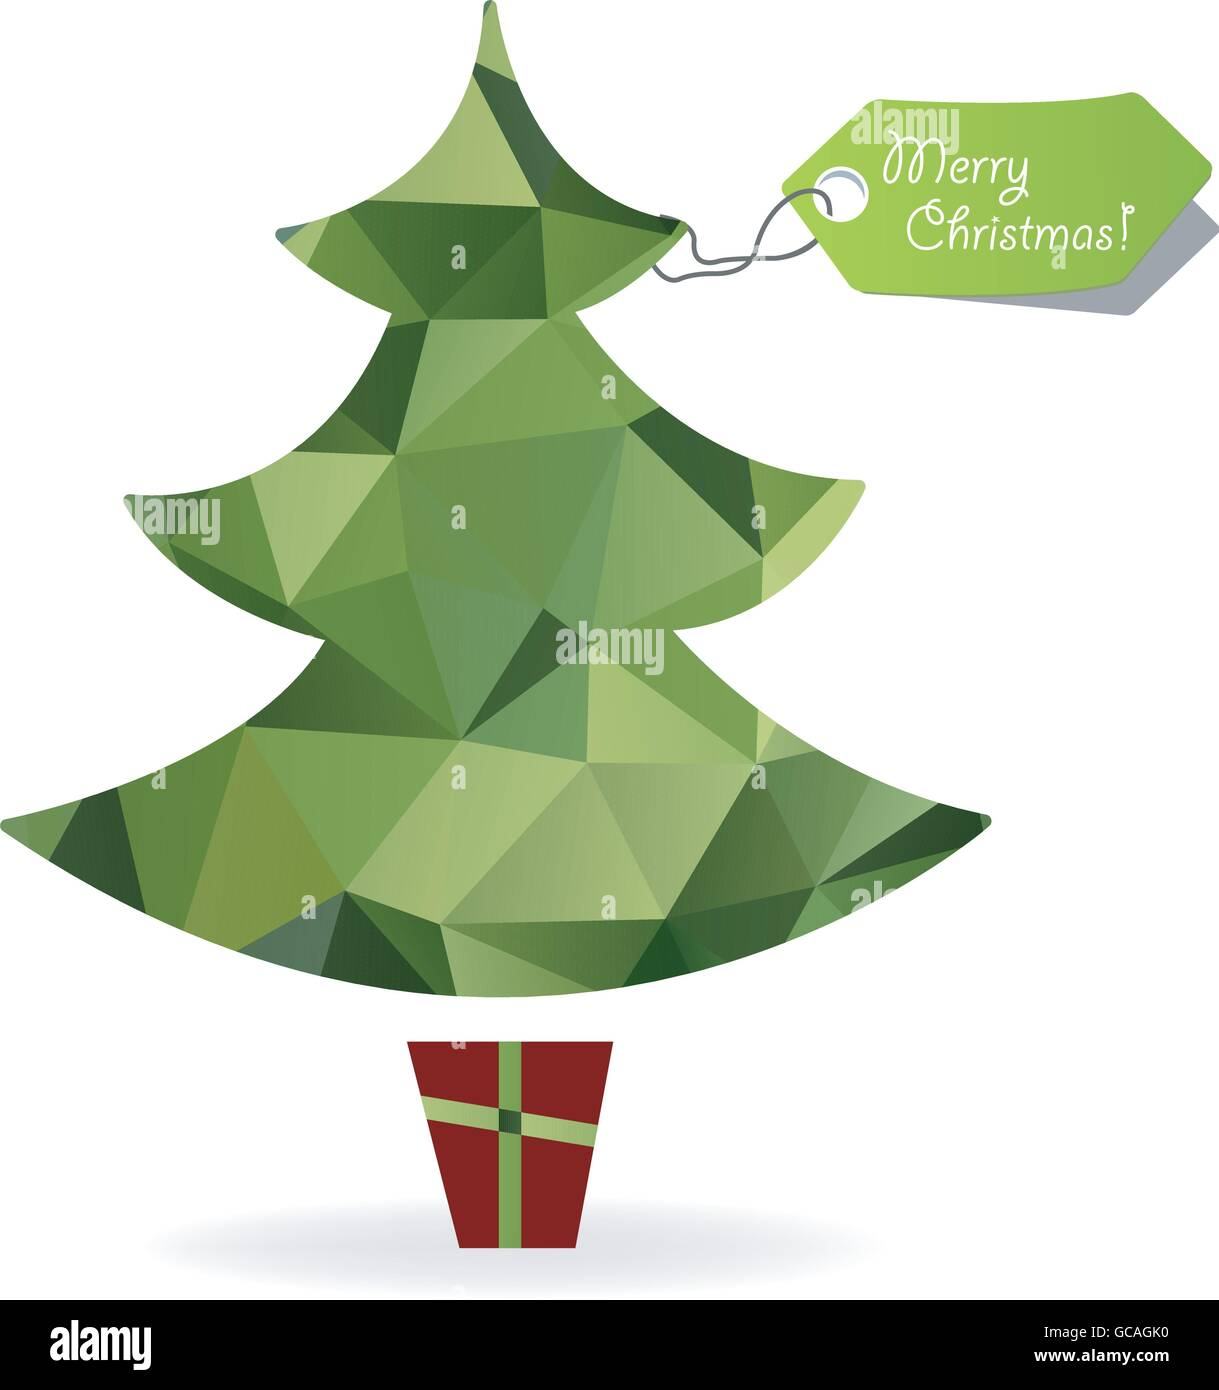 Abstract Christmas tree symbol made of triangles,geometric ...